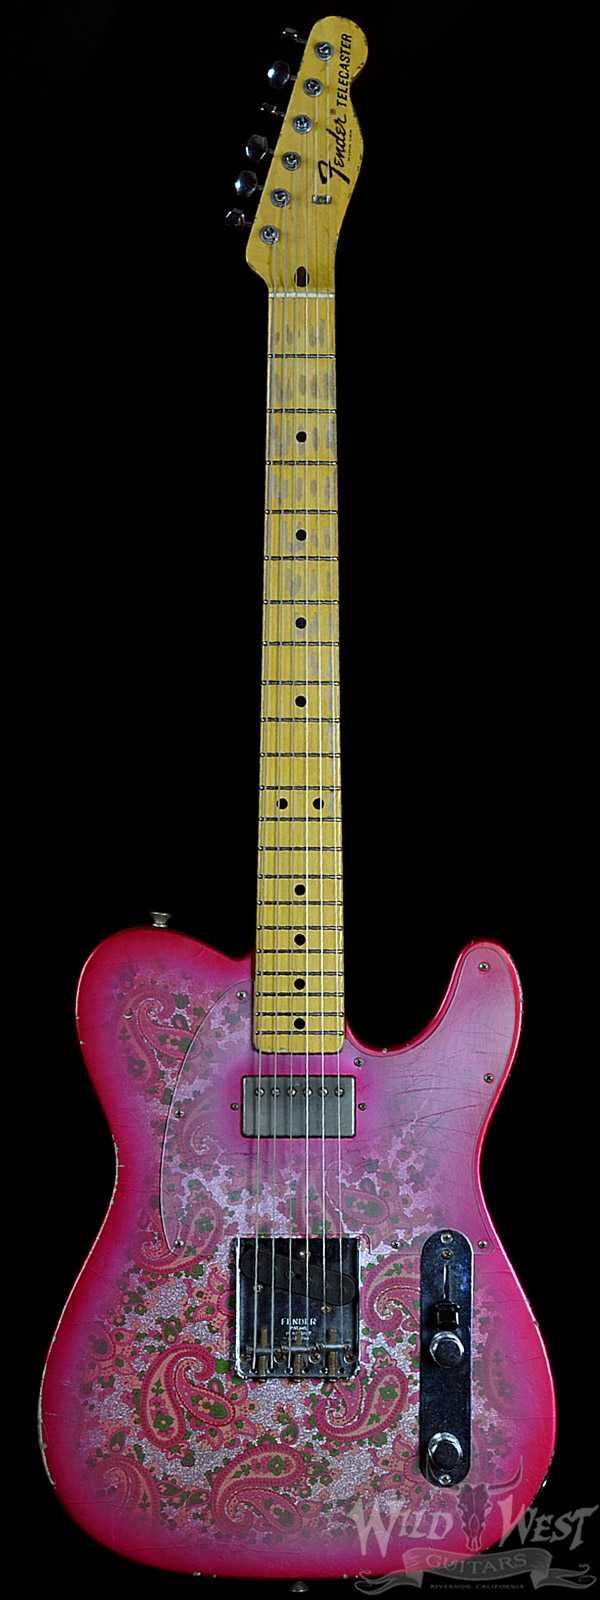 Fender Masterbuilt Relic 1968 Pink Paisley Telecaster by Jason Smith